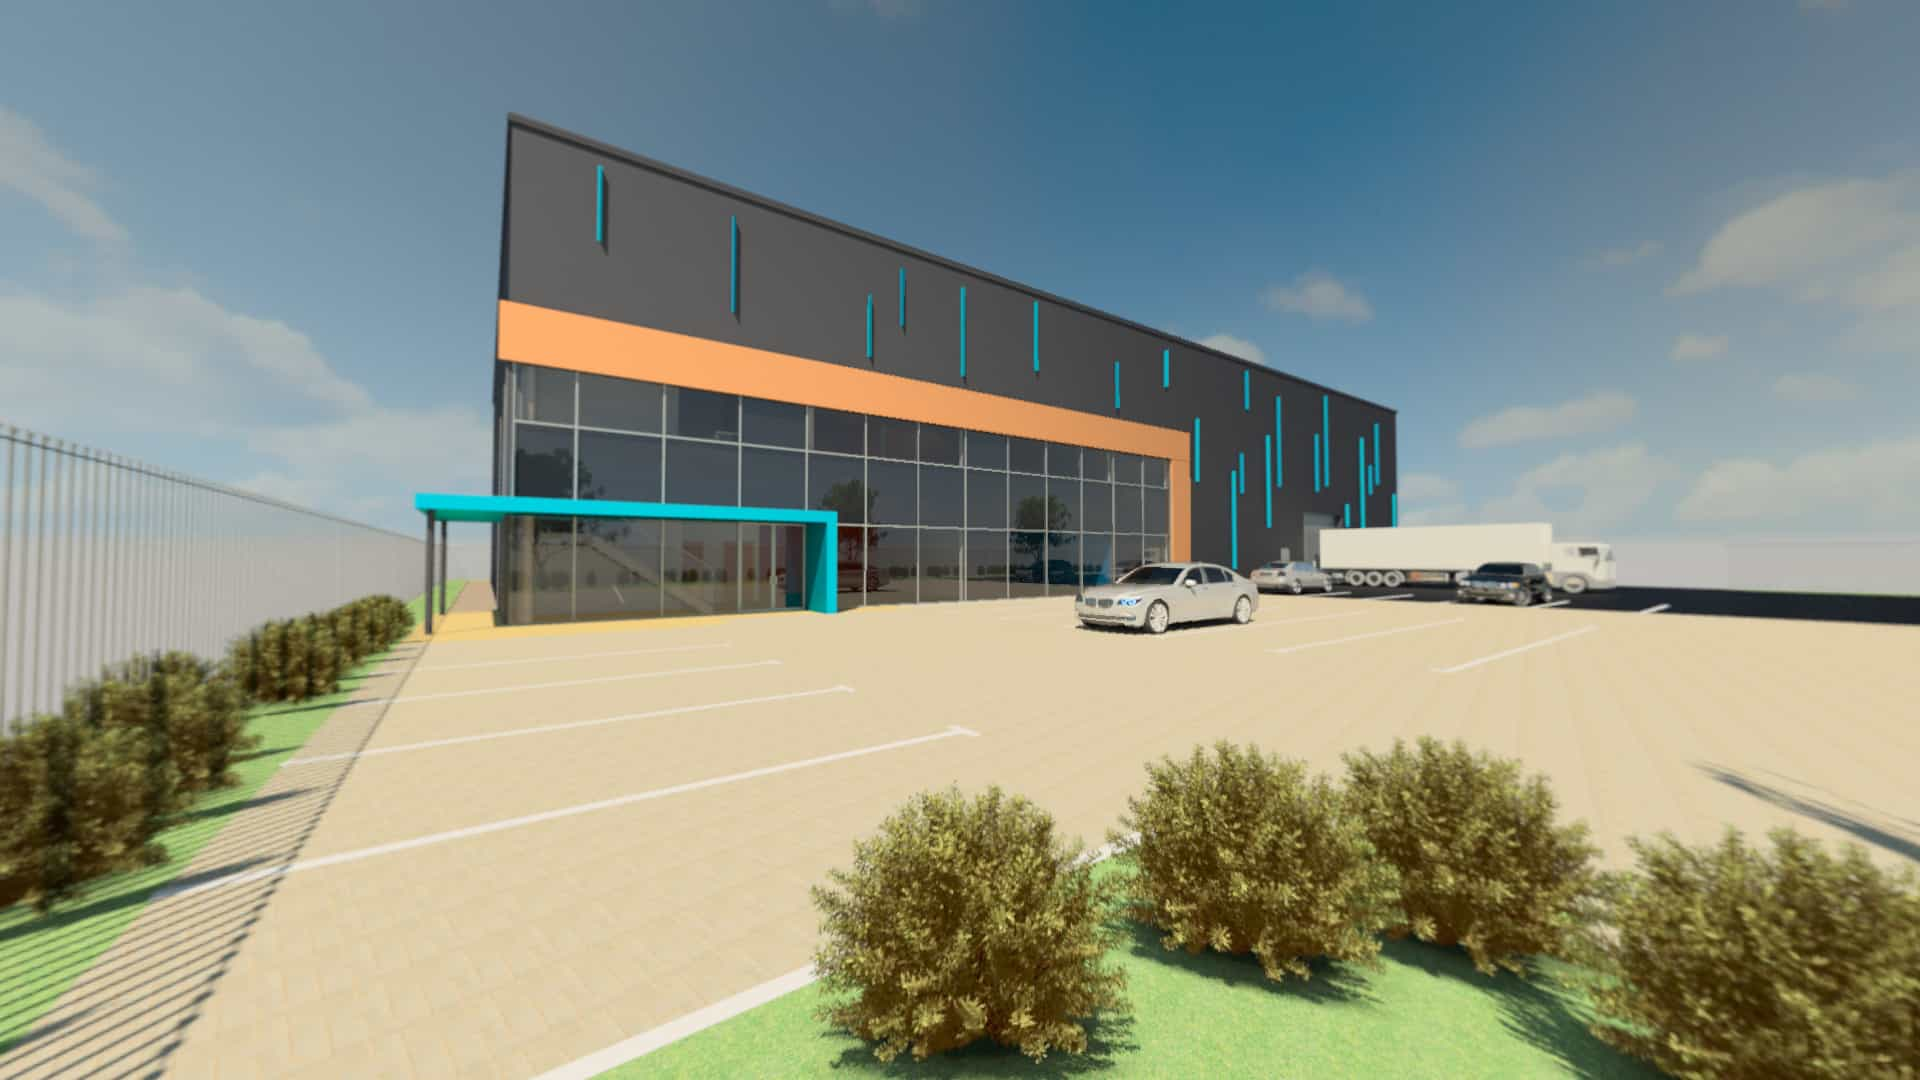 Allsee announces construction of New Warehouse and Office